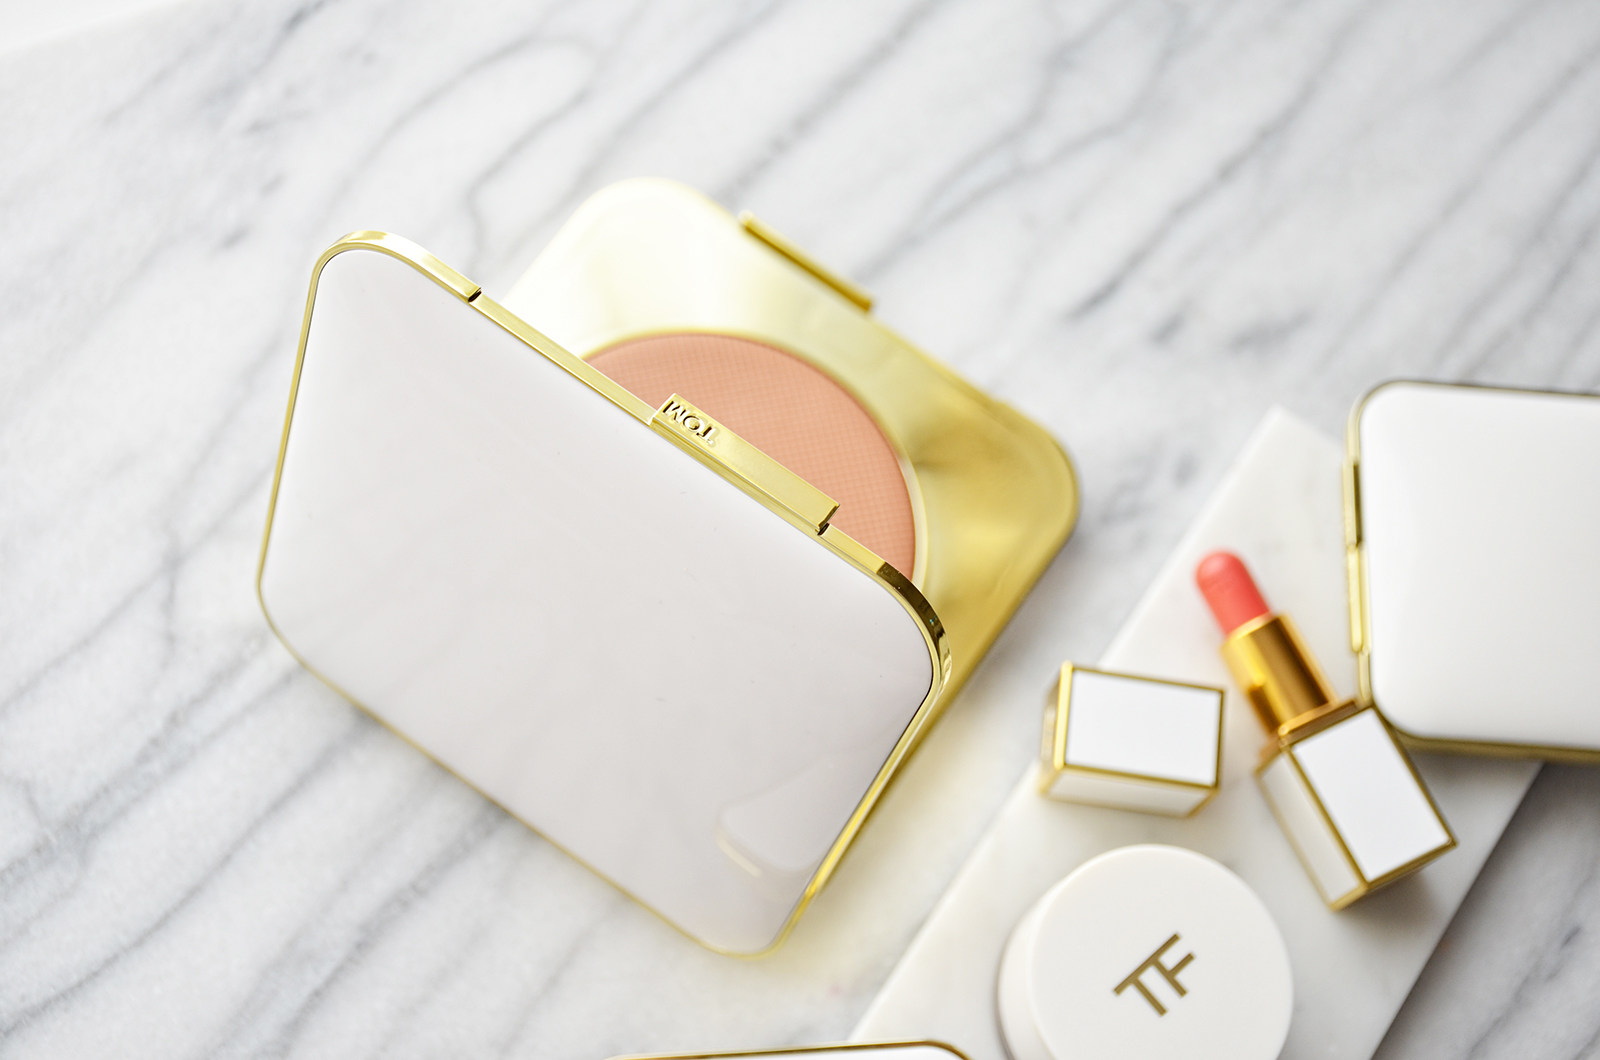 Tom Ford 2017 Summer Soleil Collection